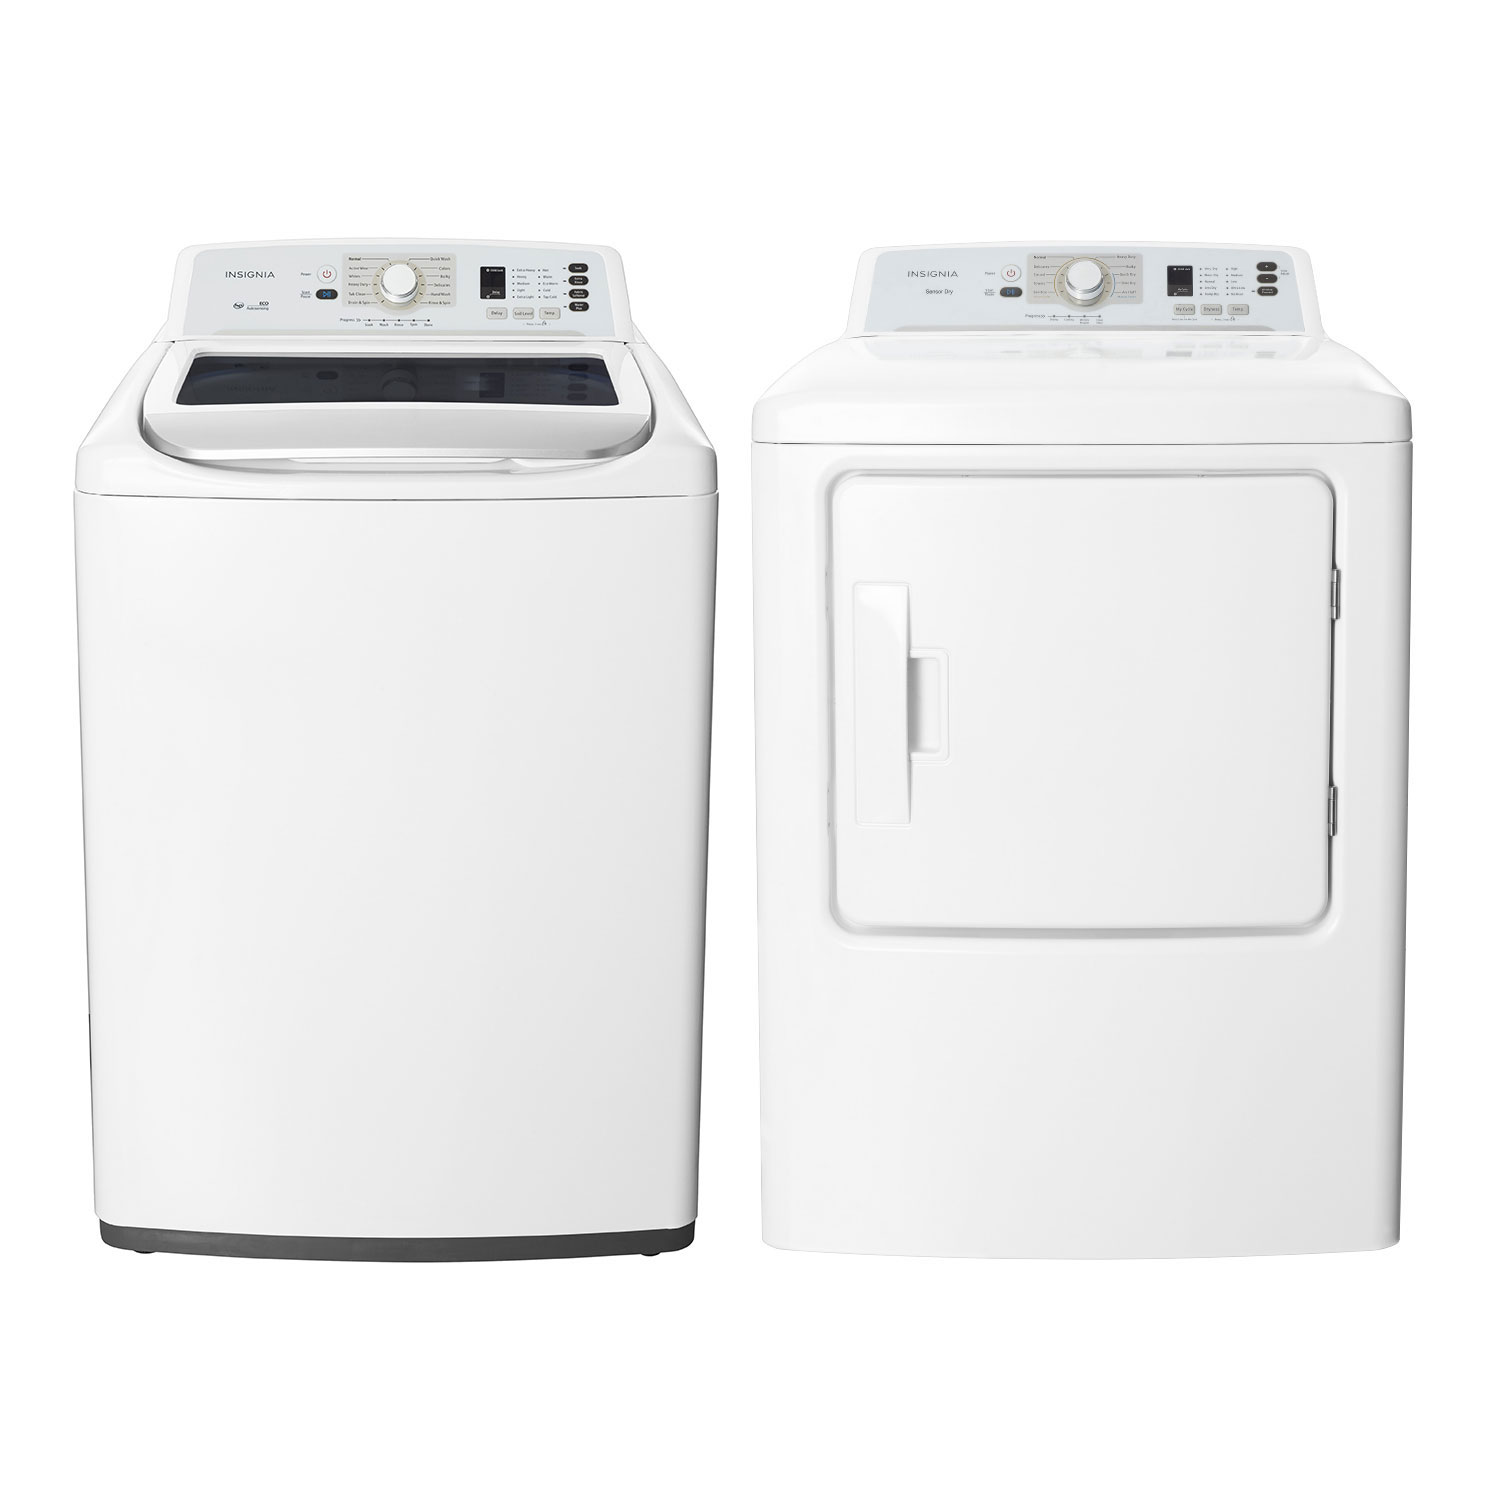 Work surface for washer and dryer - Ft Top Load Washer And 6 7 Cu Ft Front Load Electric Dryer White